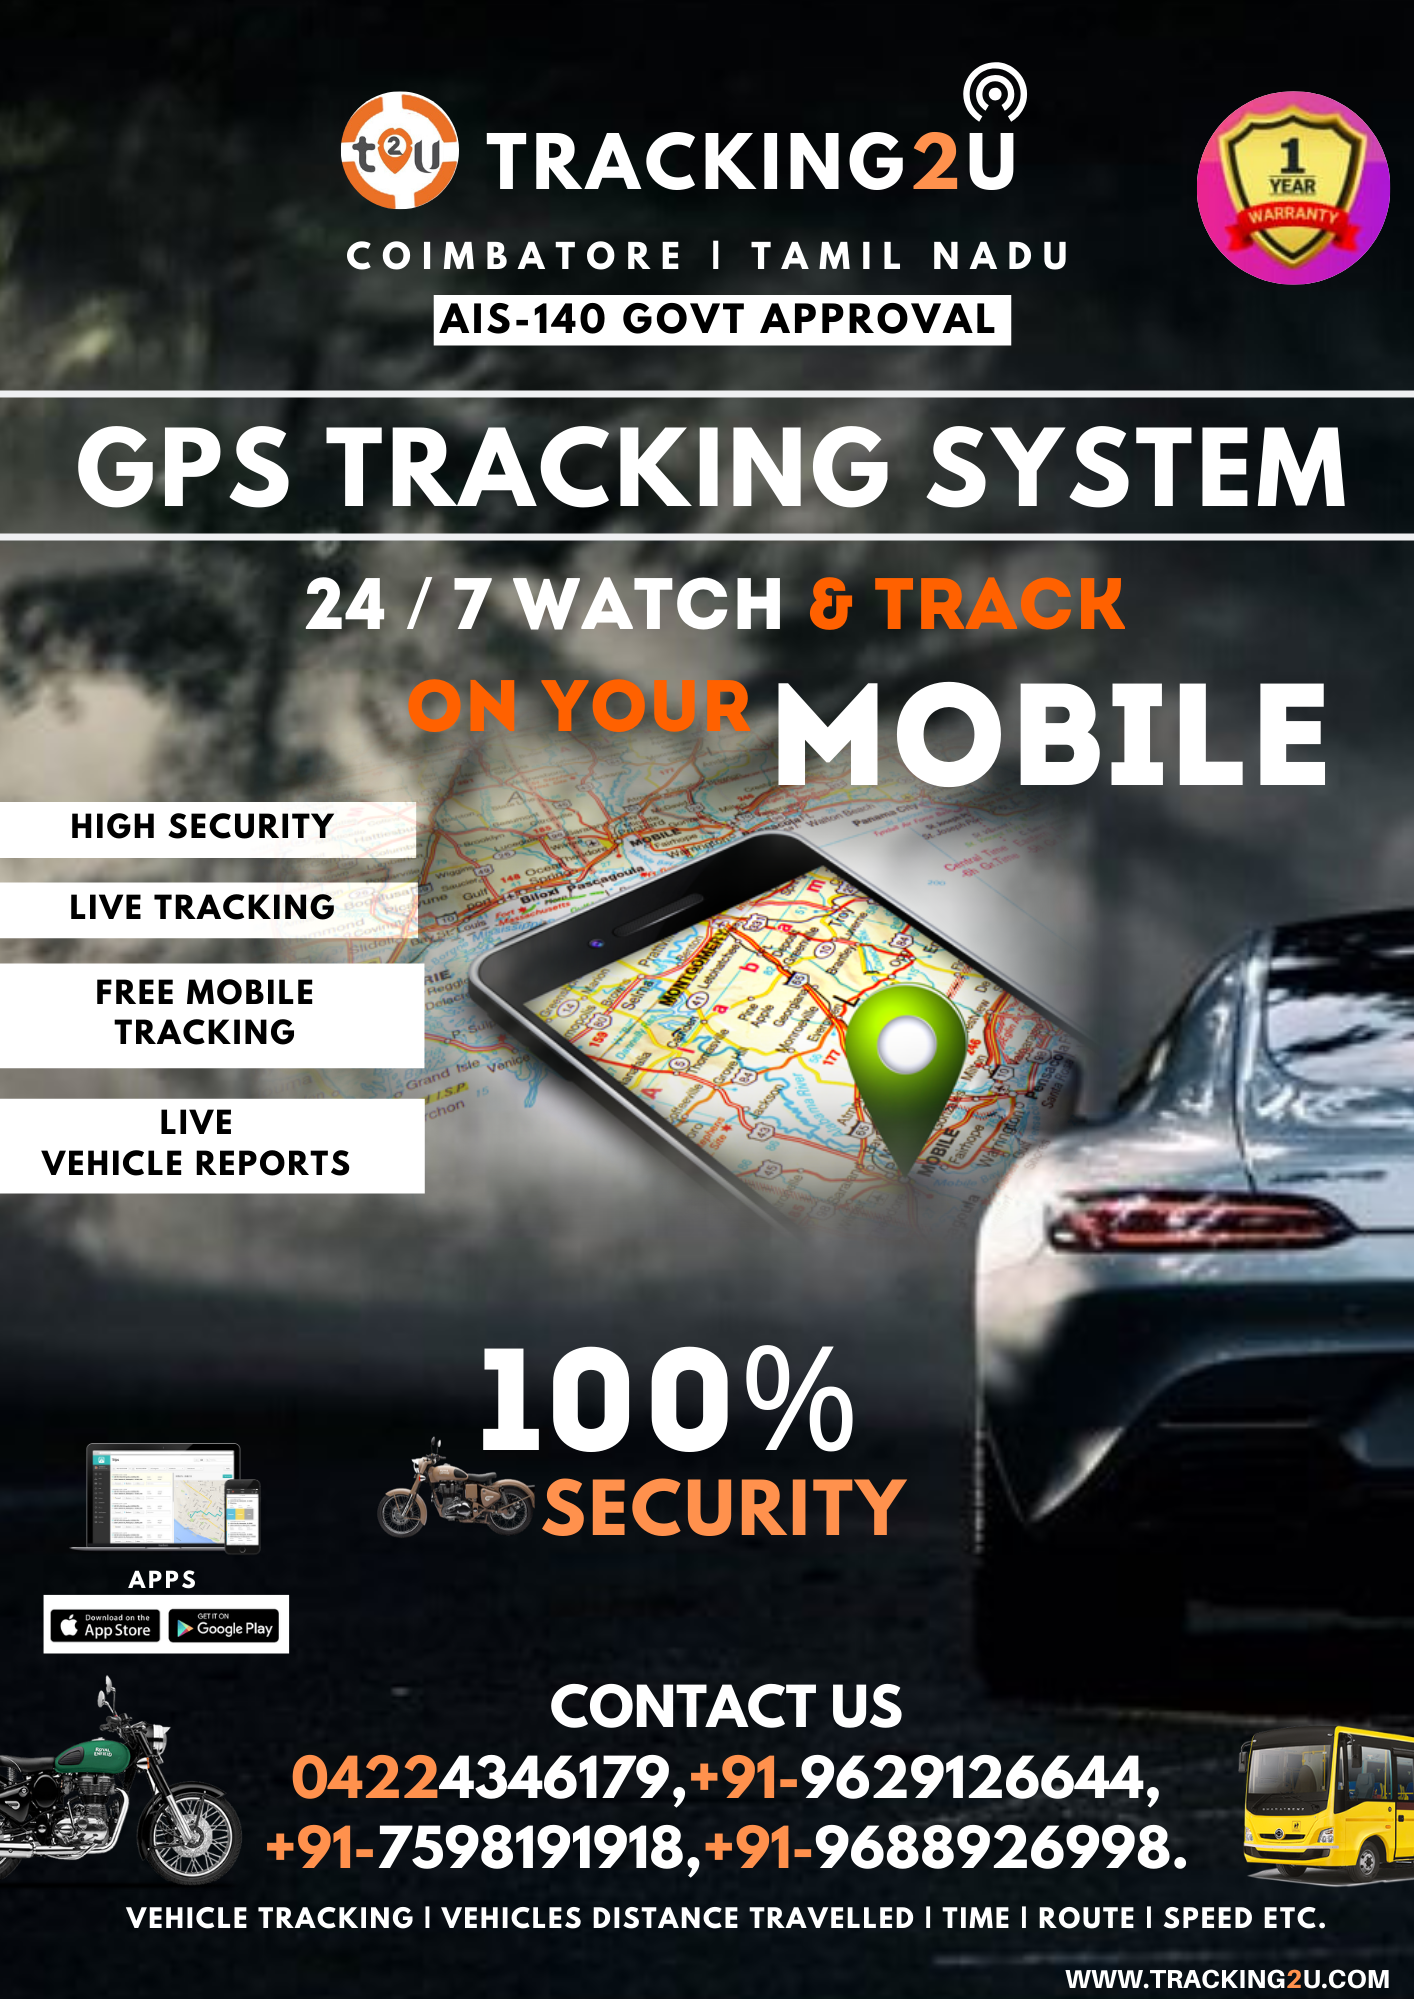 Here, with tracking2u we provide a Vehicle tracking system